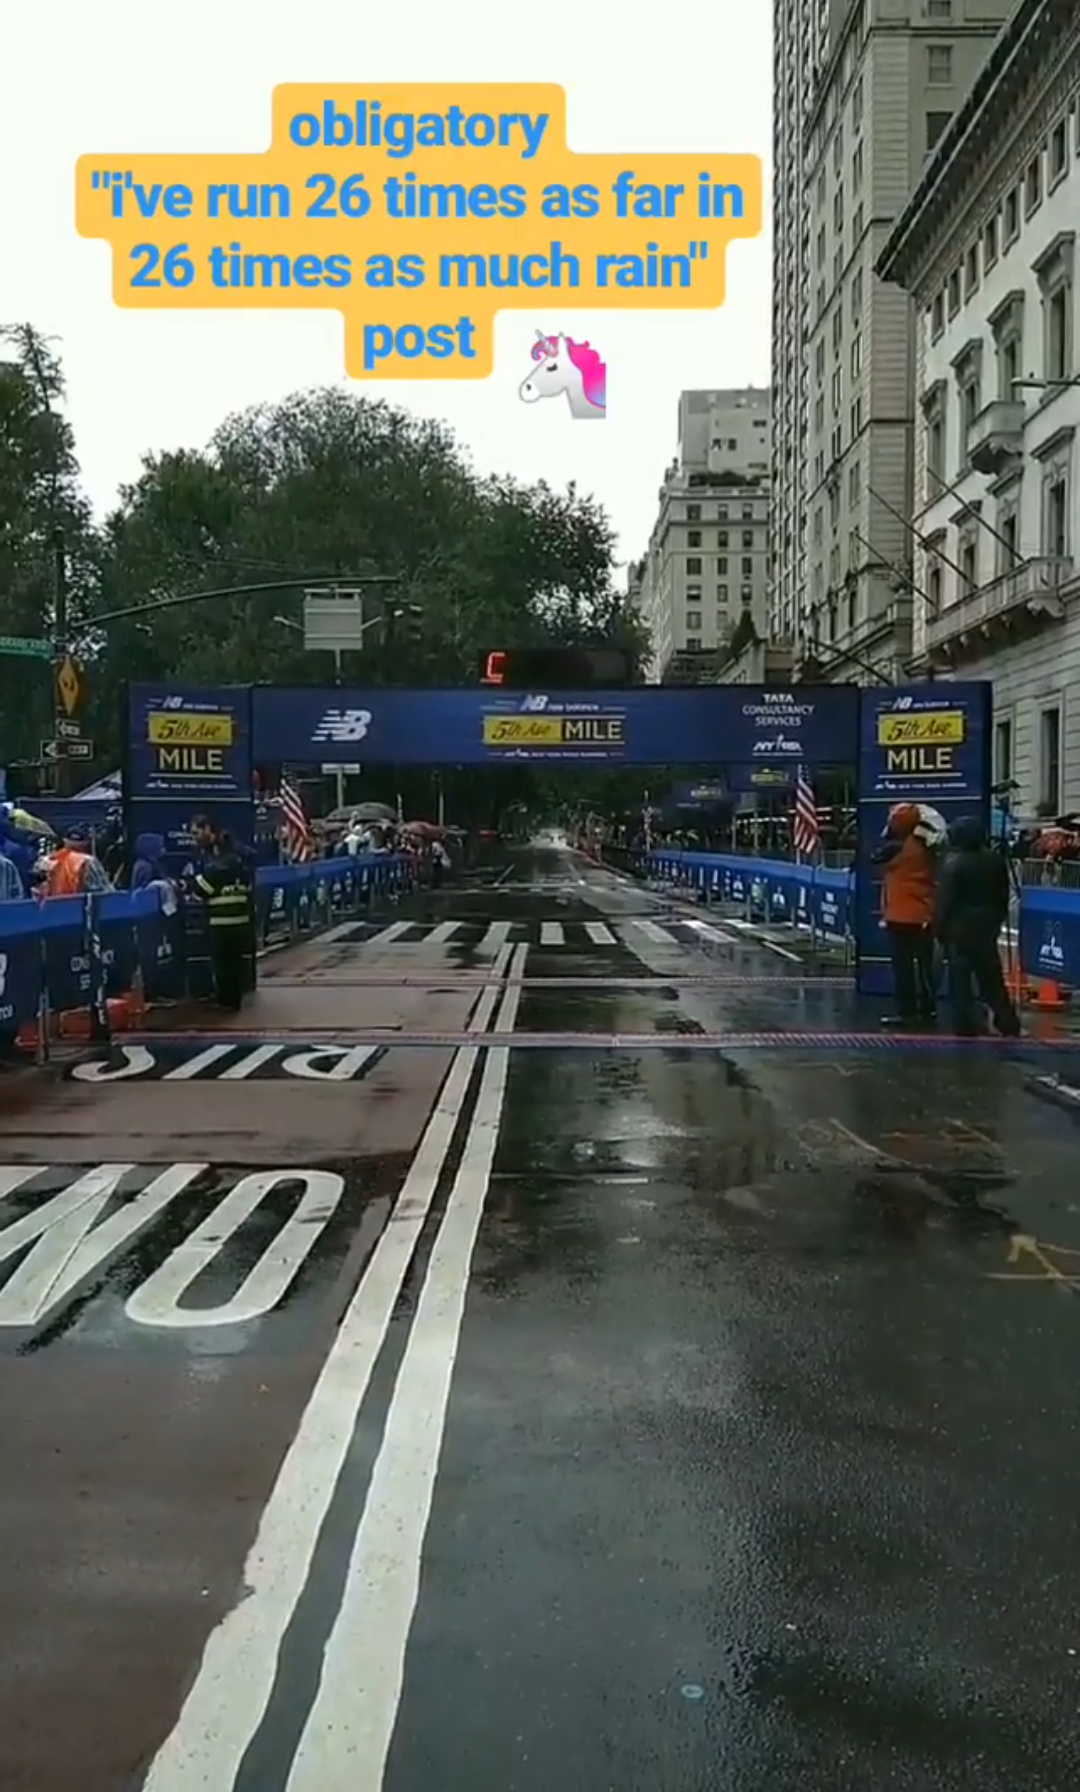 """An image of the 2018 New Balance 5th Avenue Mile finish line with text overlaid: """"obligatory 'i've run 26 times as far in 26 times as much rain' post"""""""